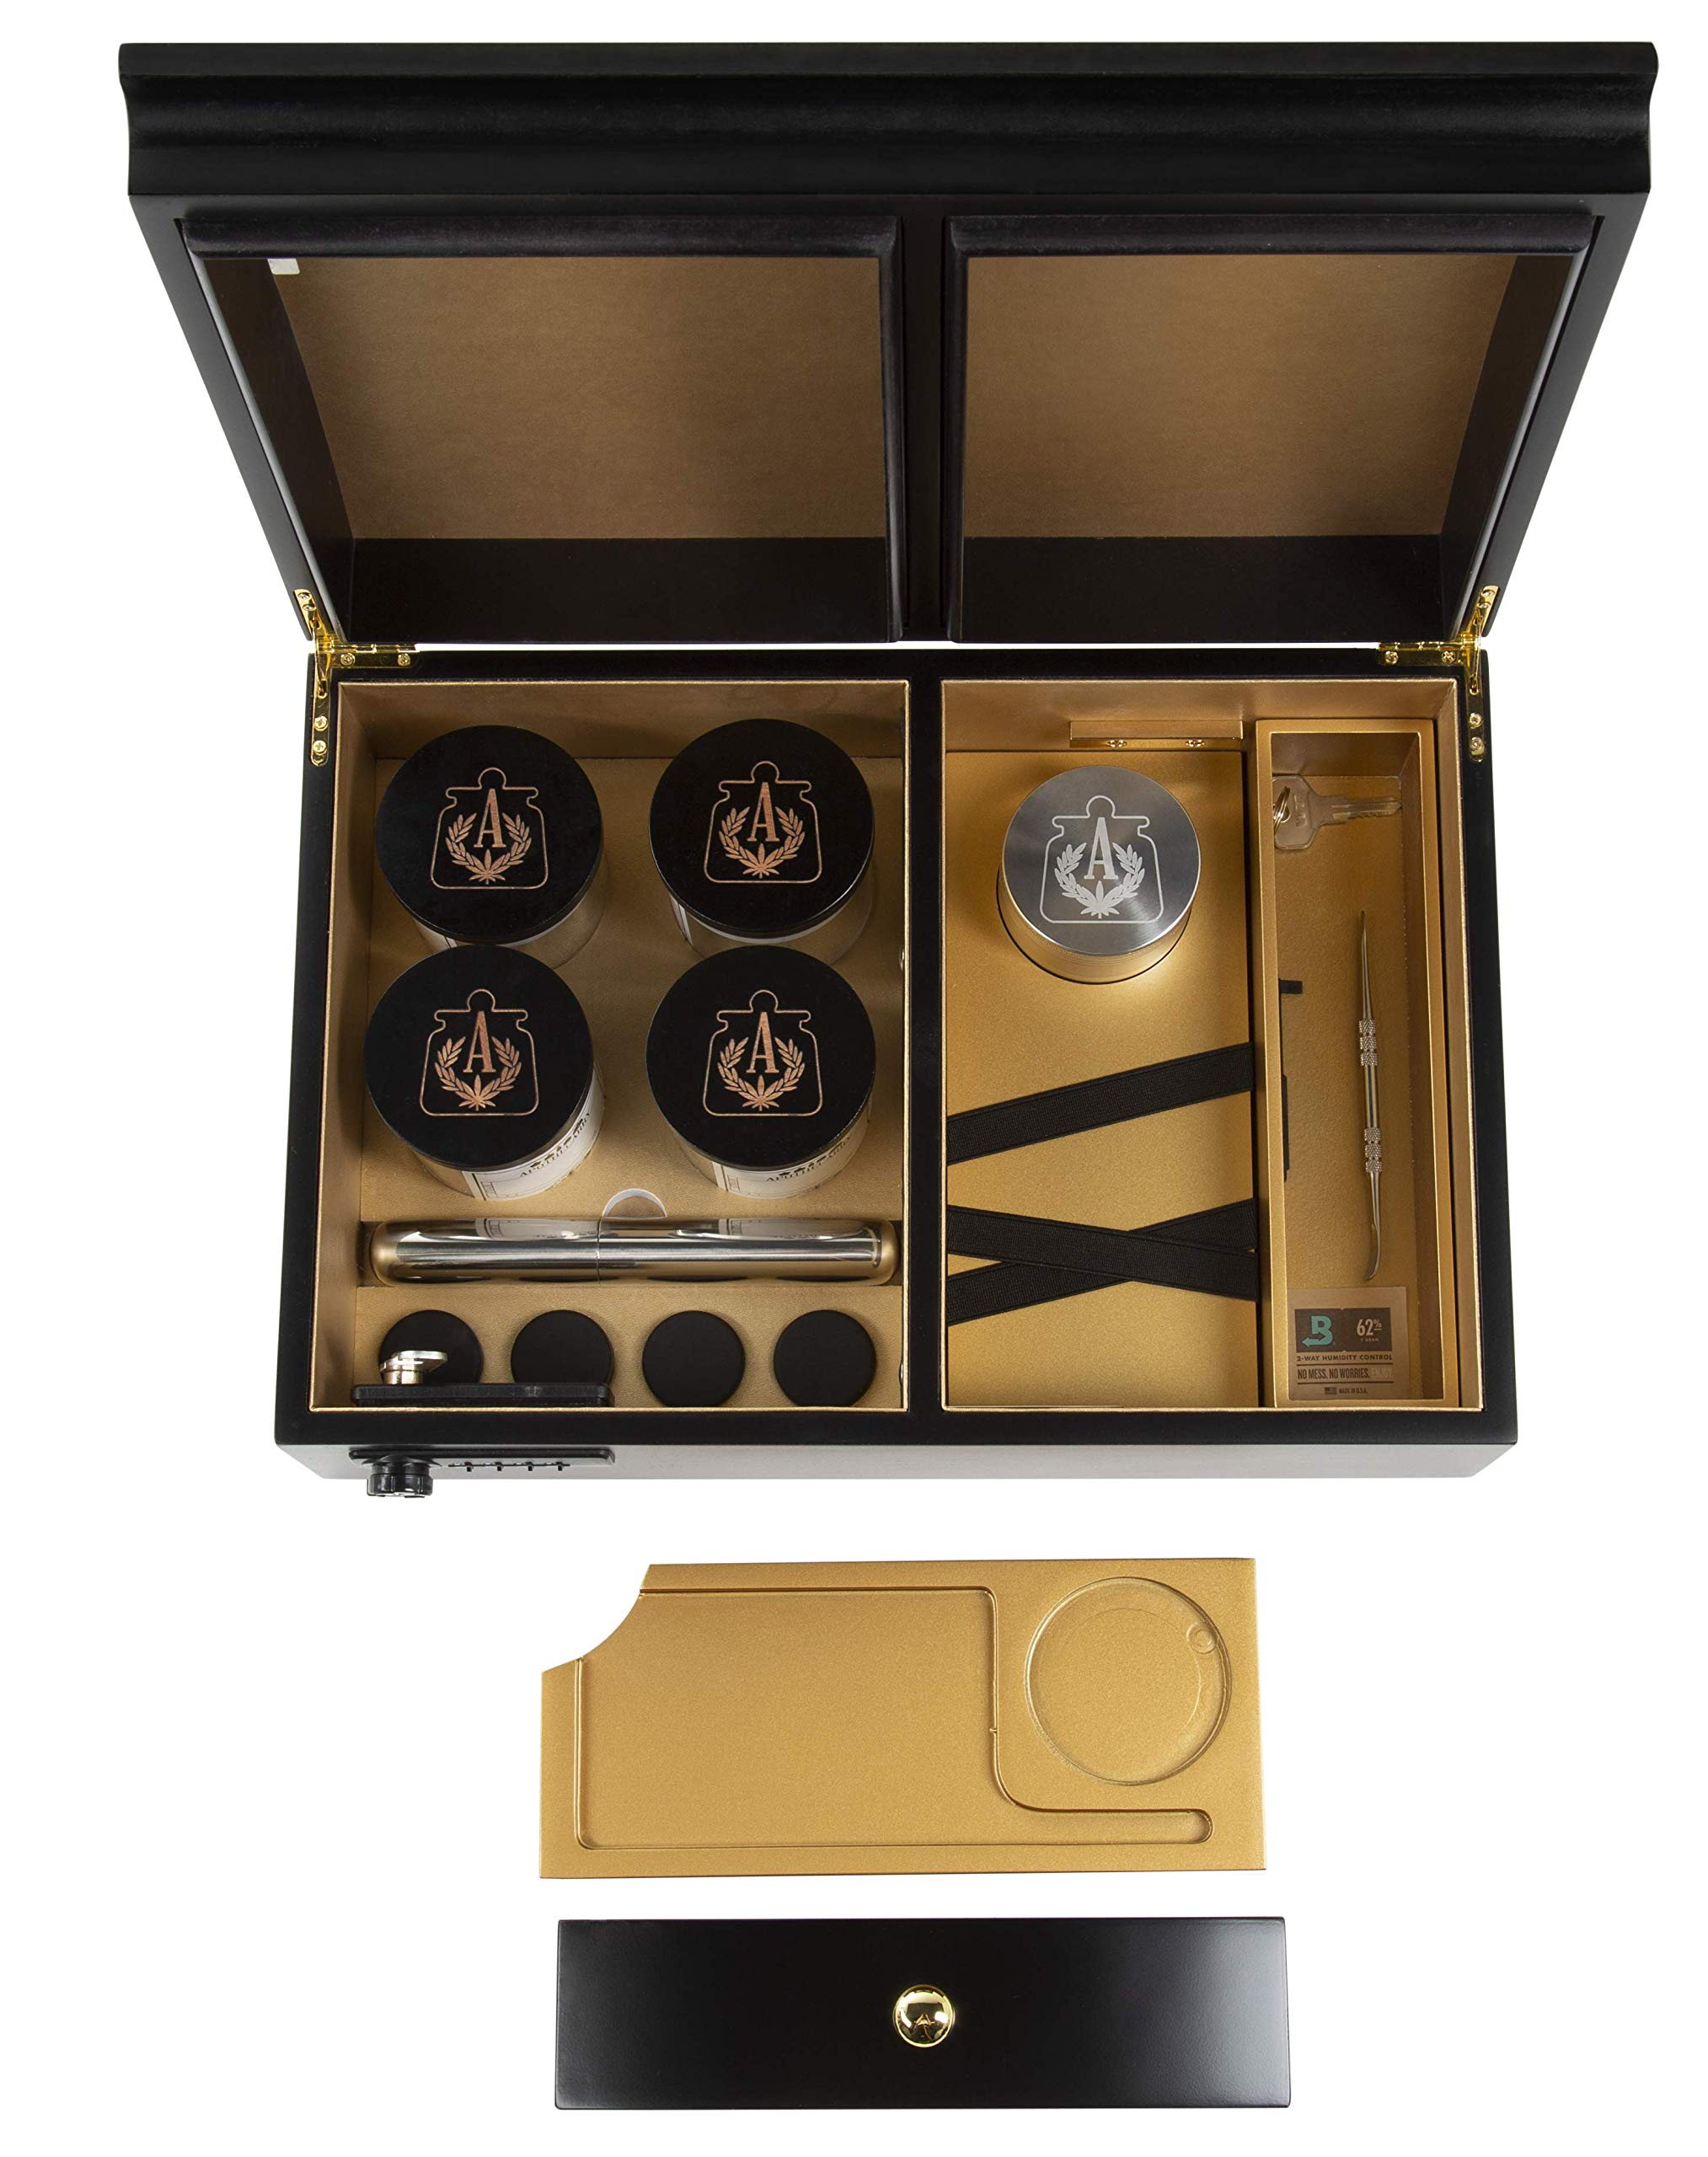 Apothecarry Case - Handmade with Built in Lock - Luxury Herb Storage Case for The Connoisseur- Full KIT (Black) by Apothecarry Brands